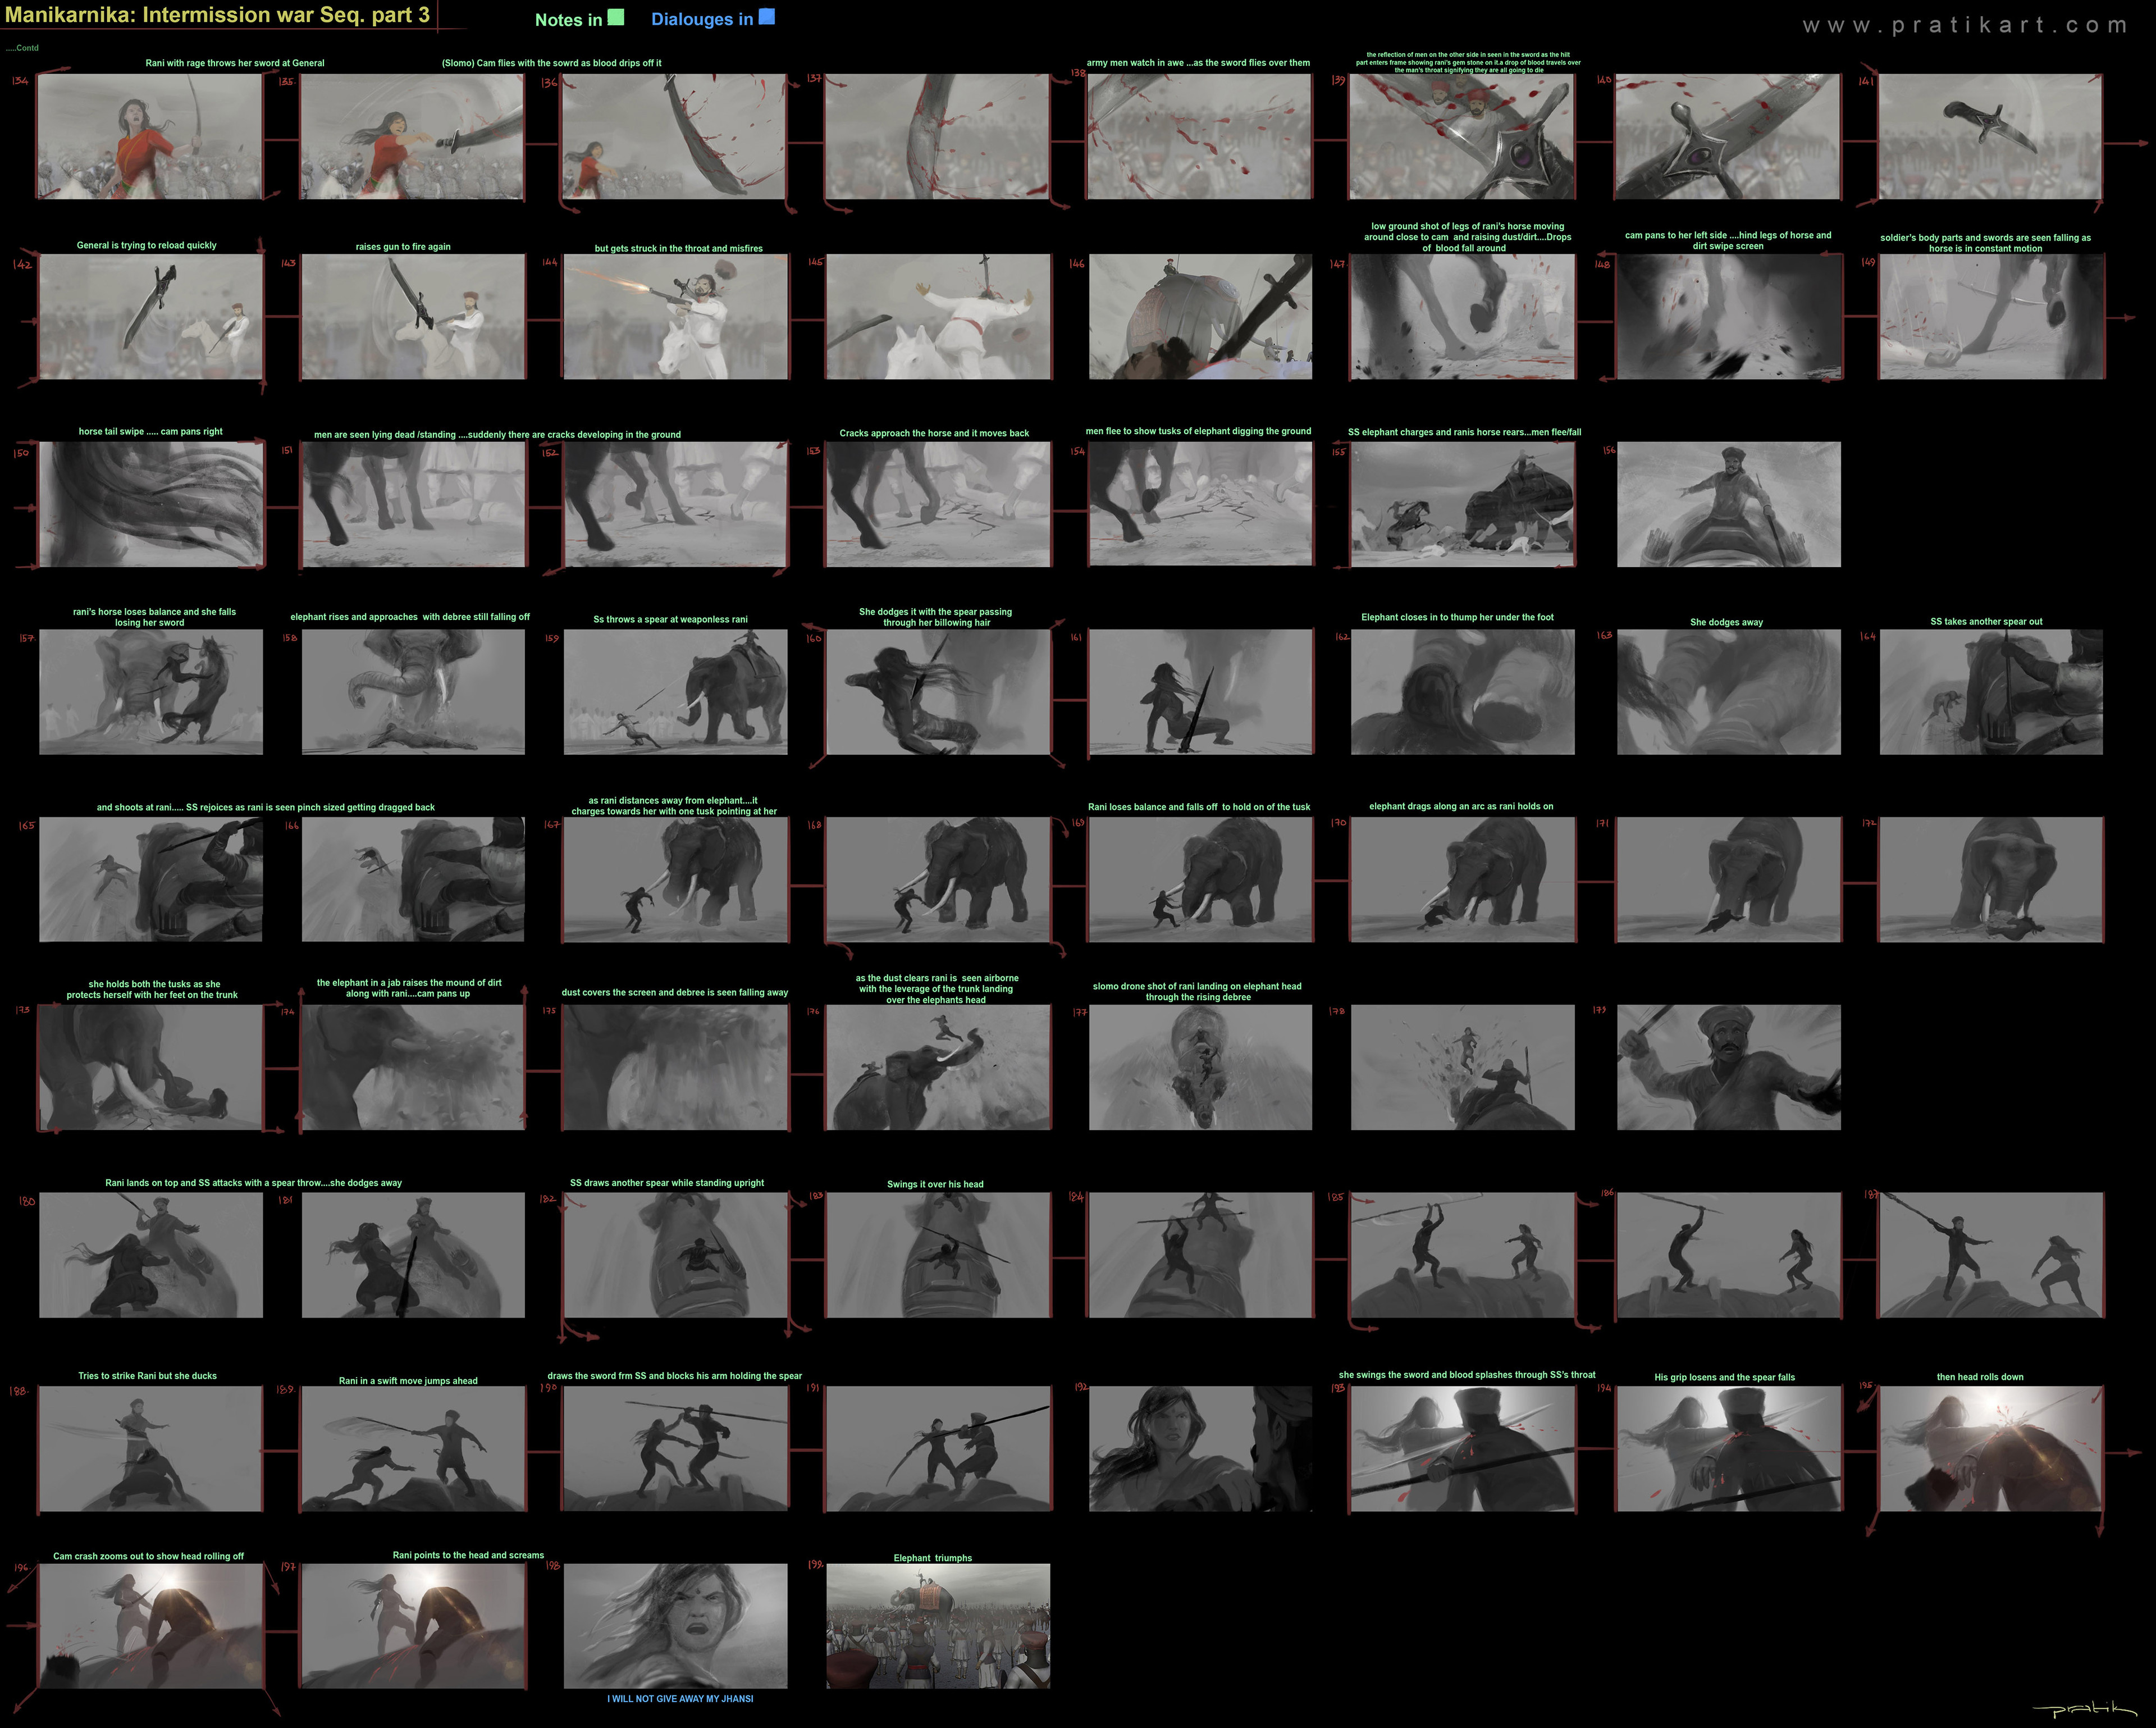 Story Boards of  war sequence for the film Manikarnika Part 3